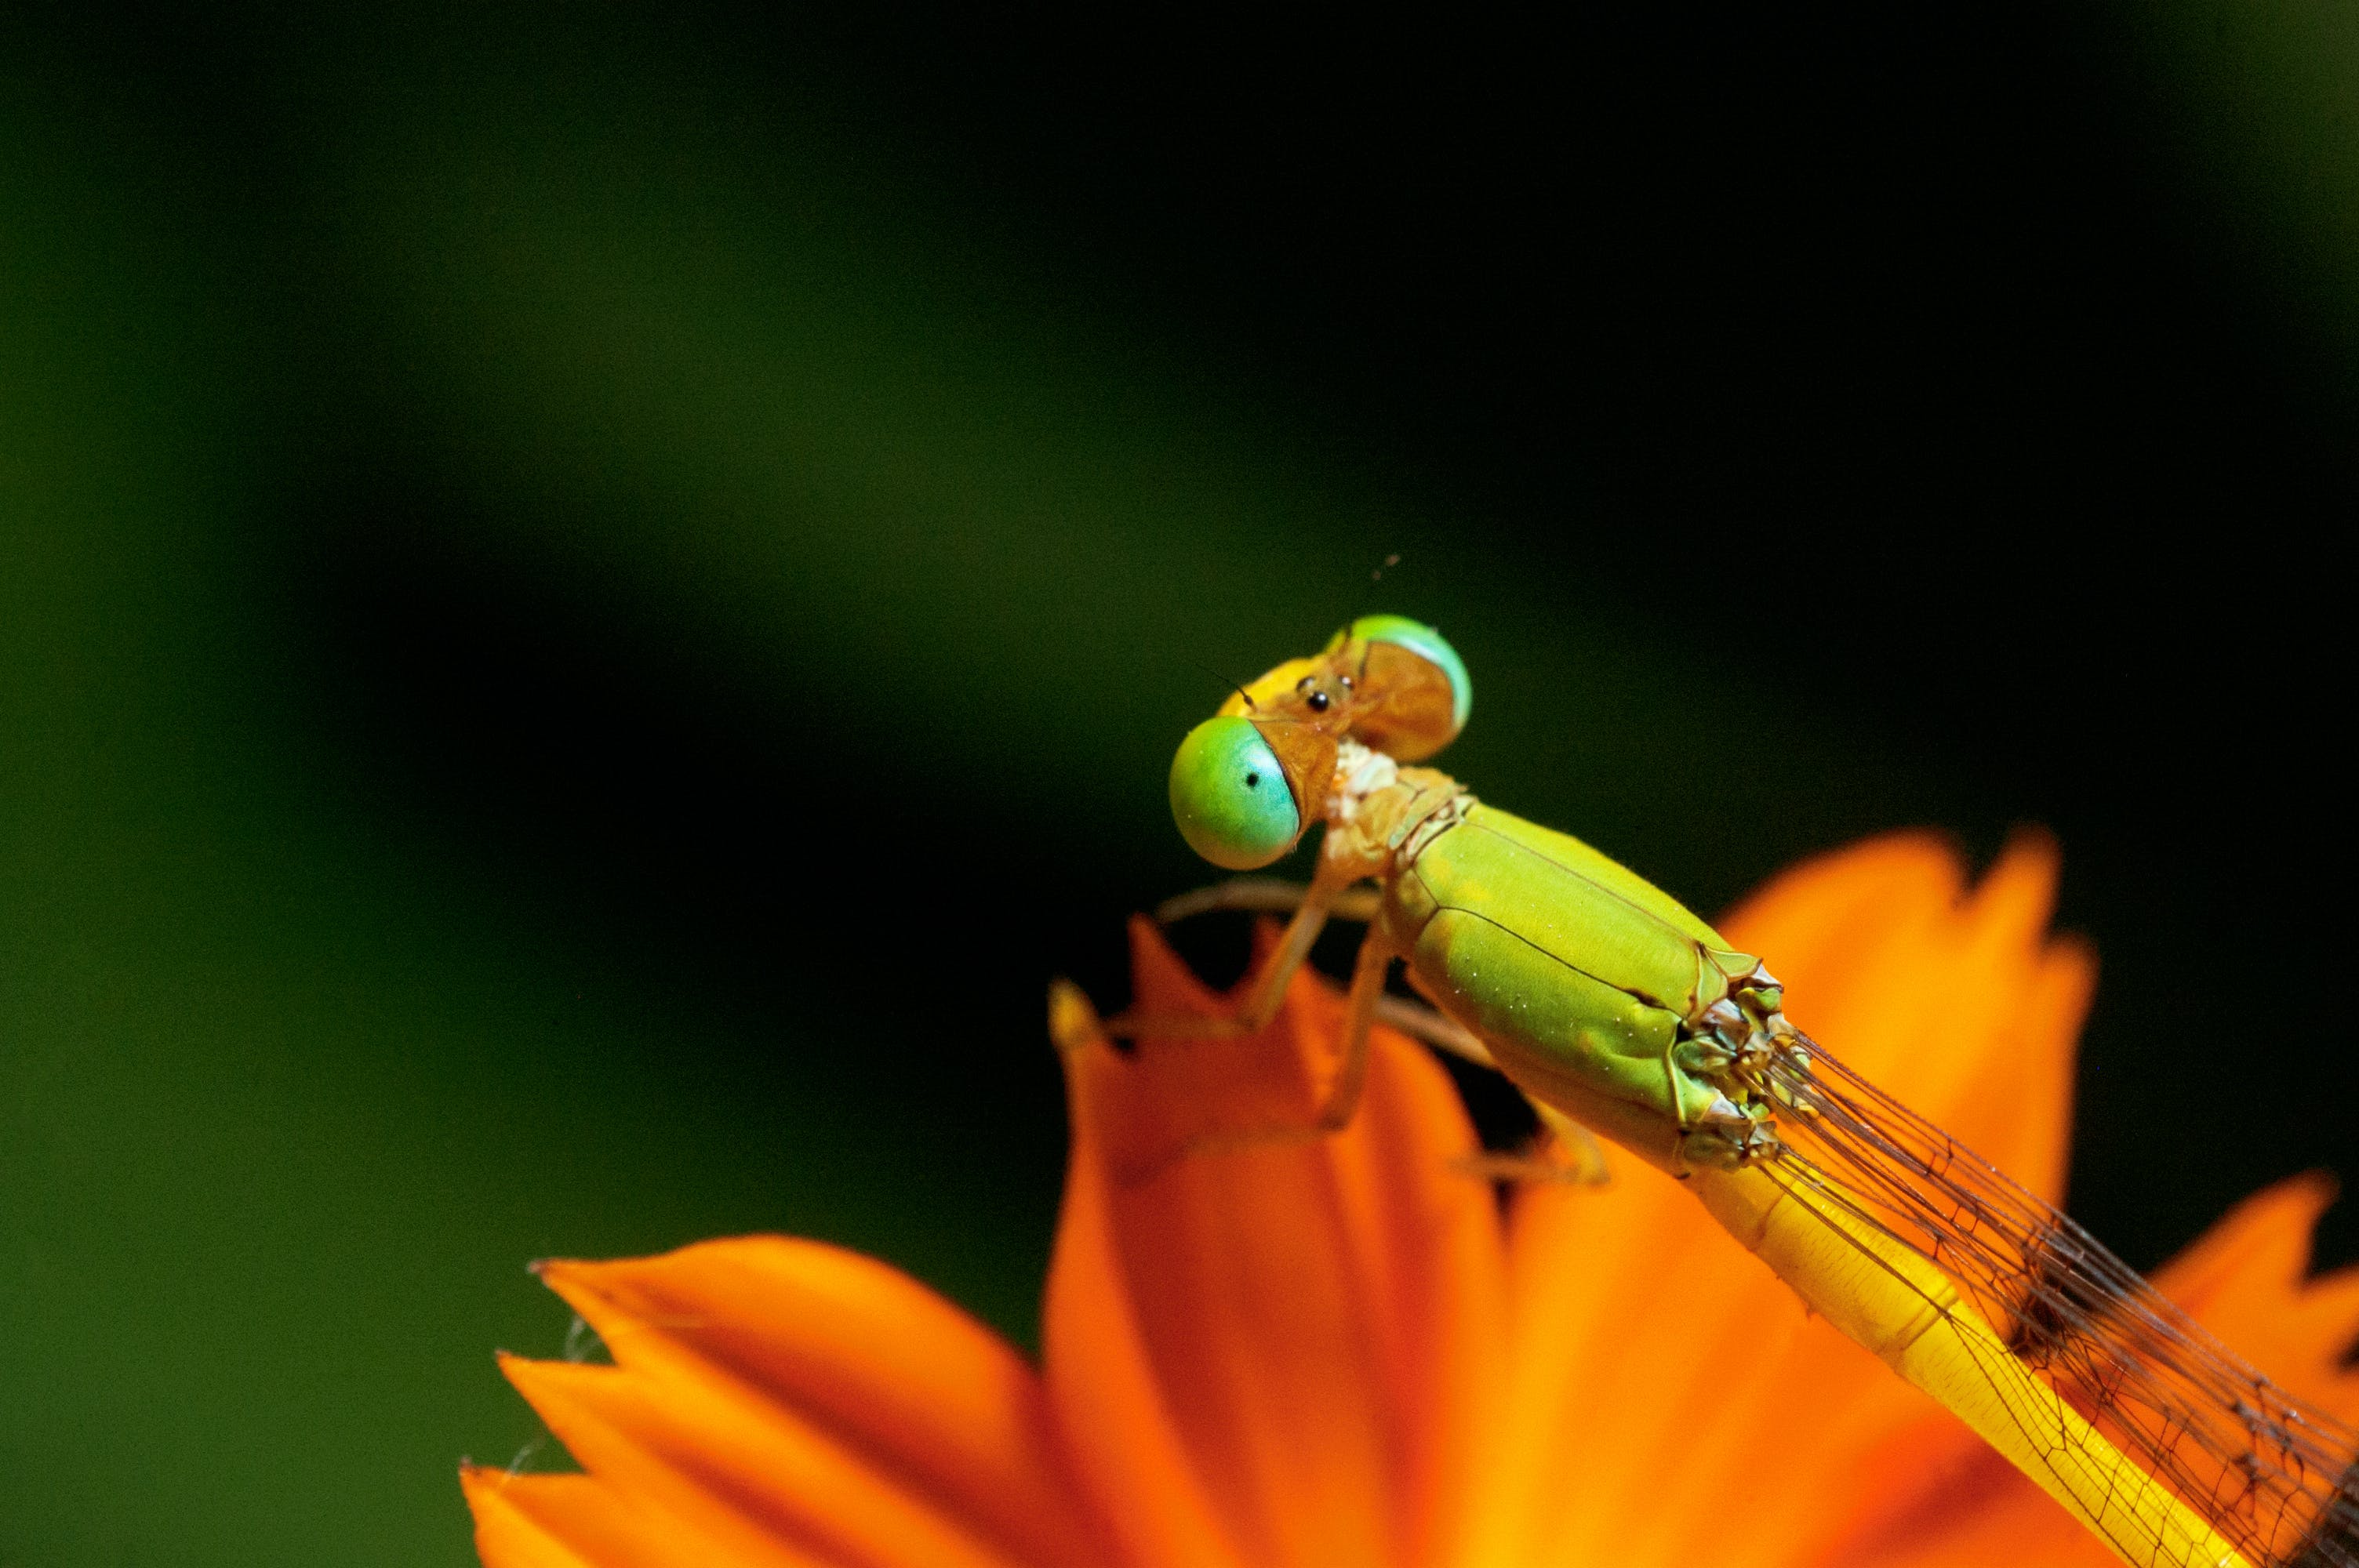 Free stock photo of compound eyes, cosmos flower, damselfly, green